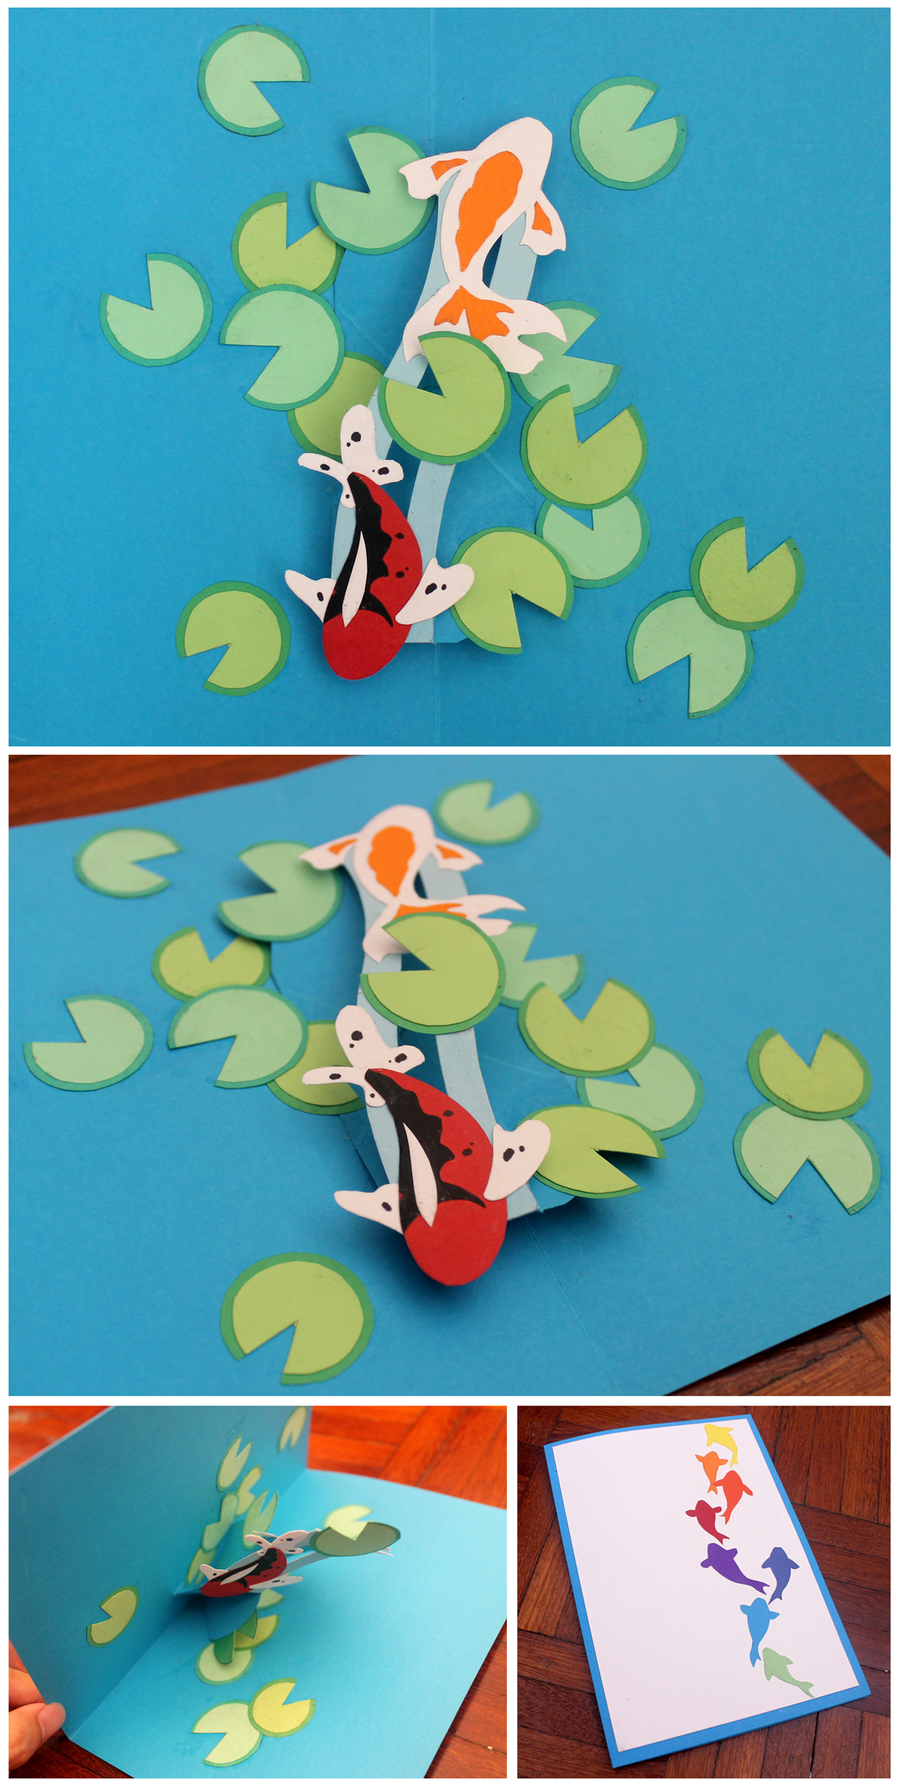 Feeling zen by endless-whispers.deviantart.com  love this playful design. alas paper craft is not one of my skills